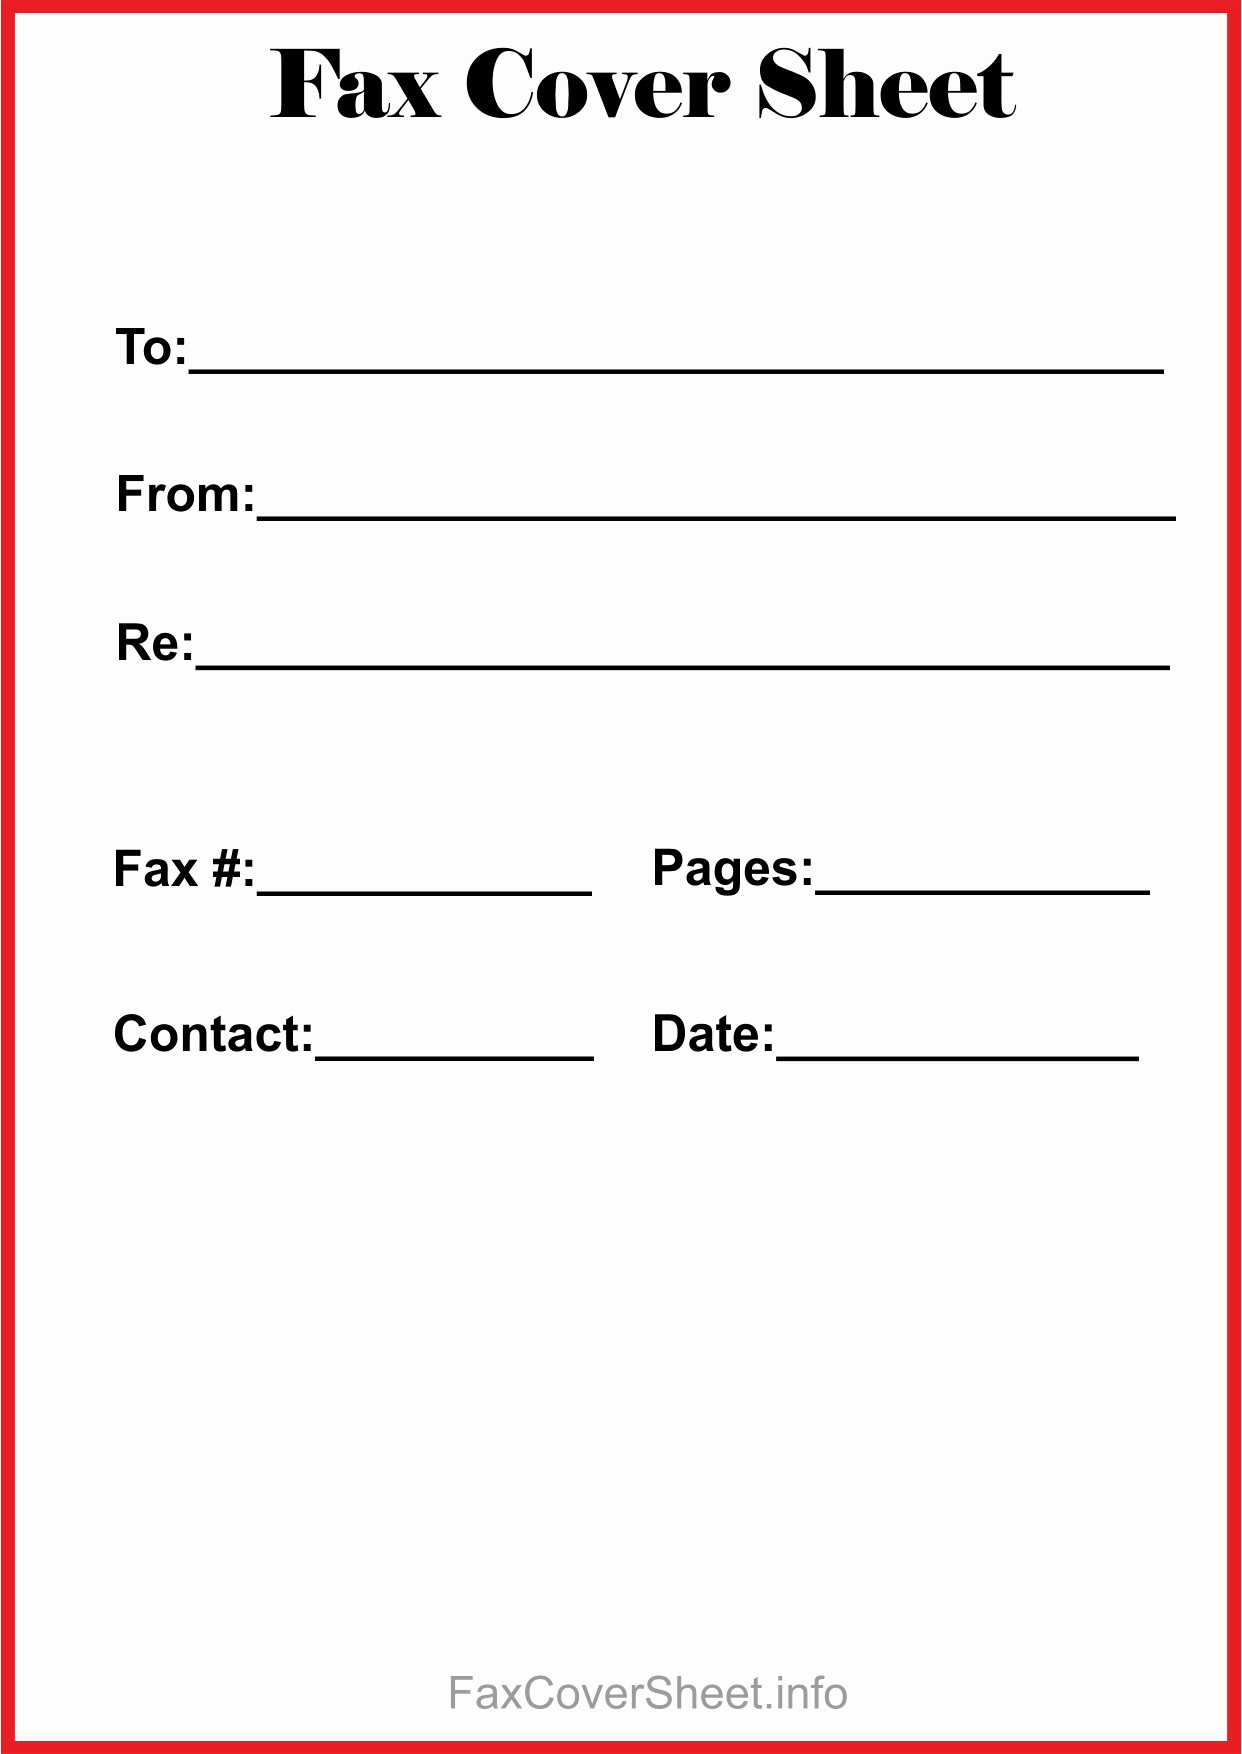 Professional Fax Cover Sheet Template Beautiful Free Fax Cover Sheet Template Download